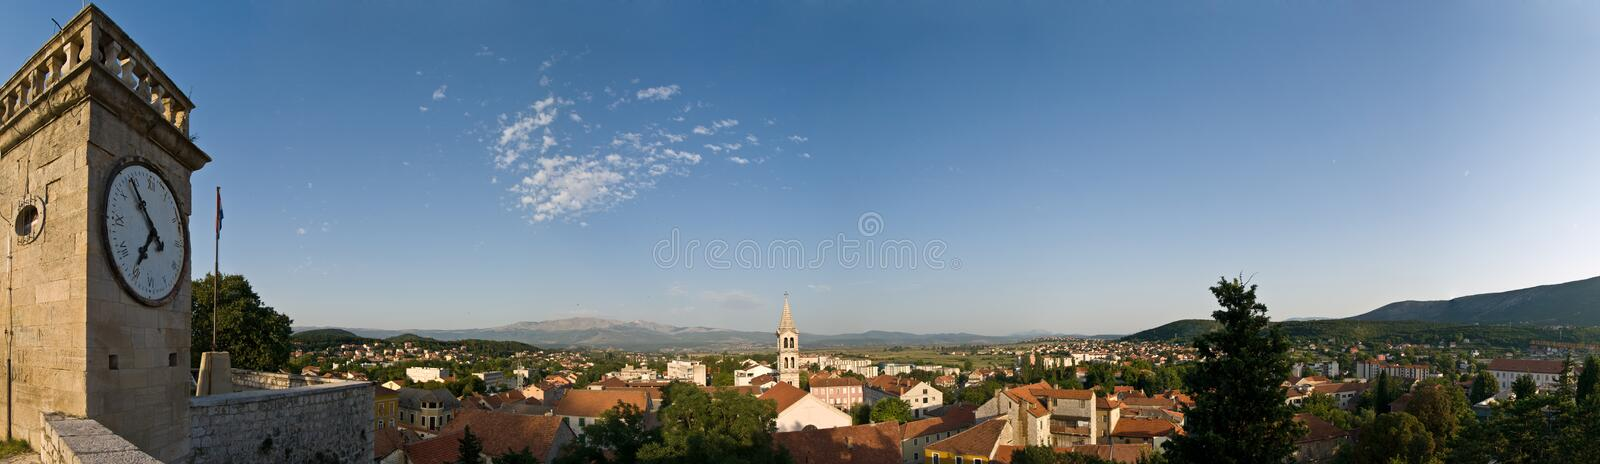 Sinj - panorama fotos de stock